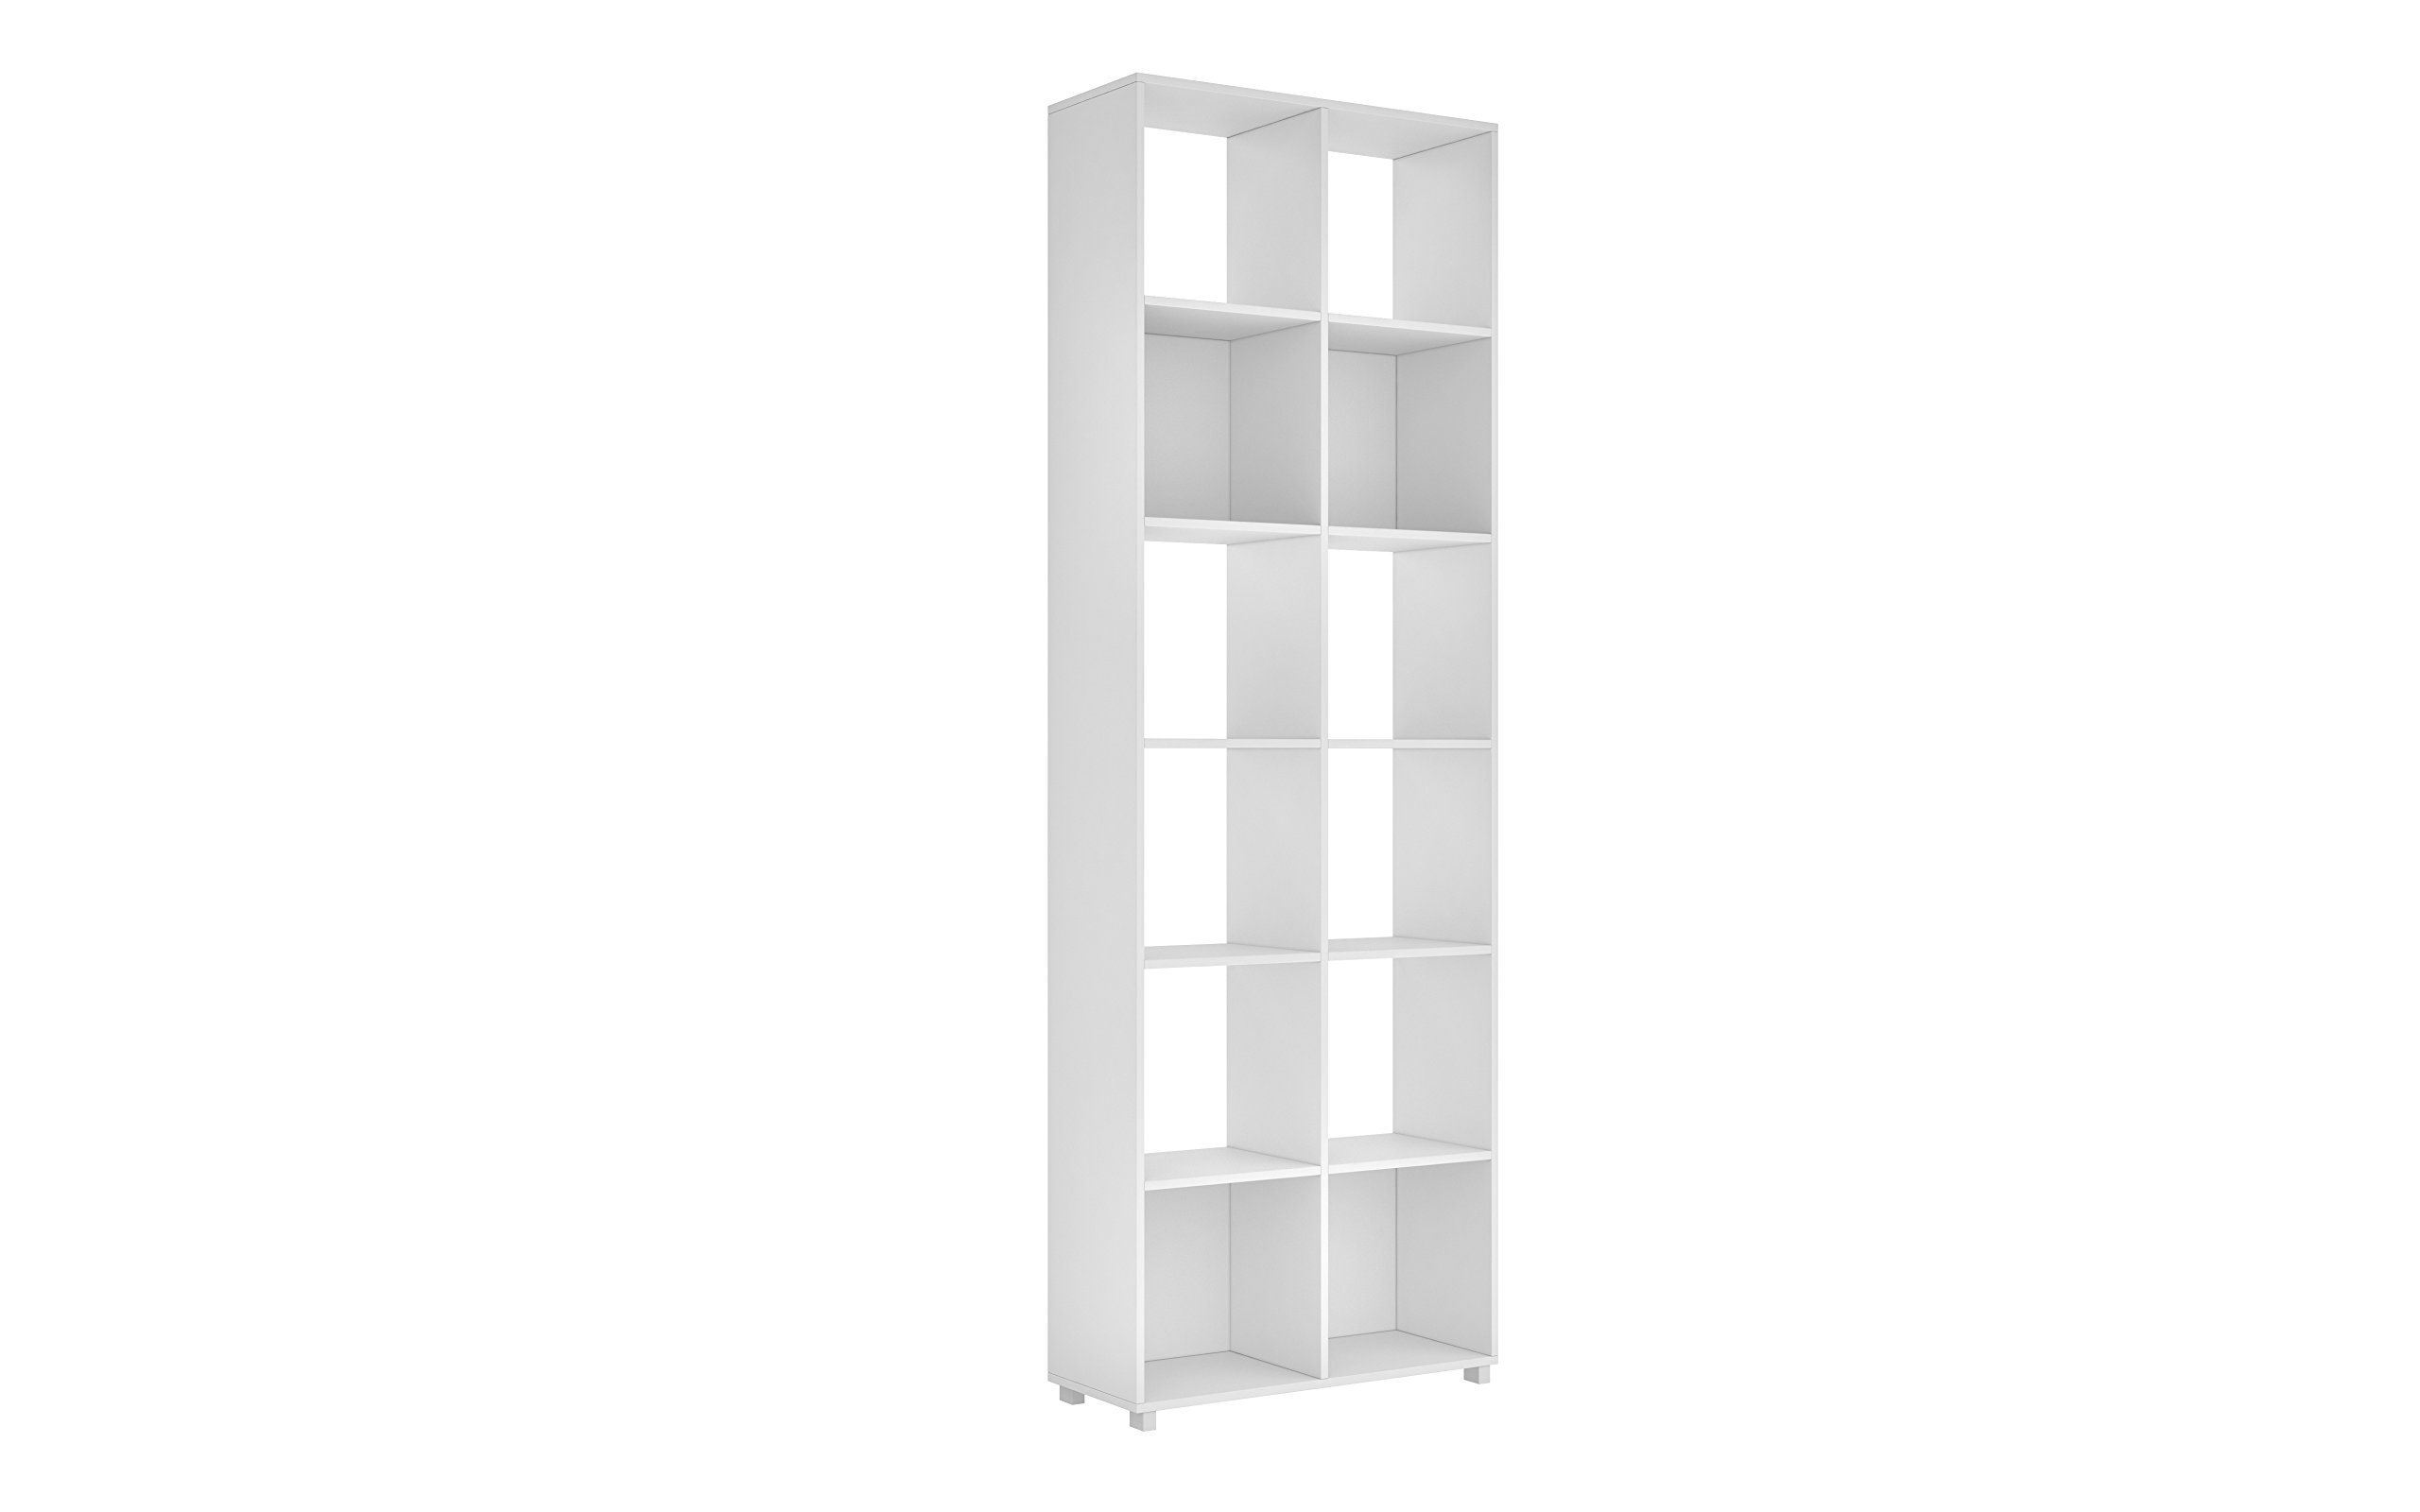 marvellous bookshelf black shelving photos shocking doors size of case bookcases horizontal prairie from full furniture new bookcase with book ideas home sauder boutique